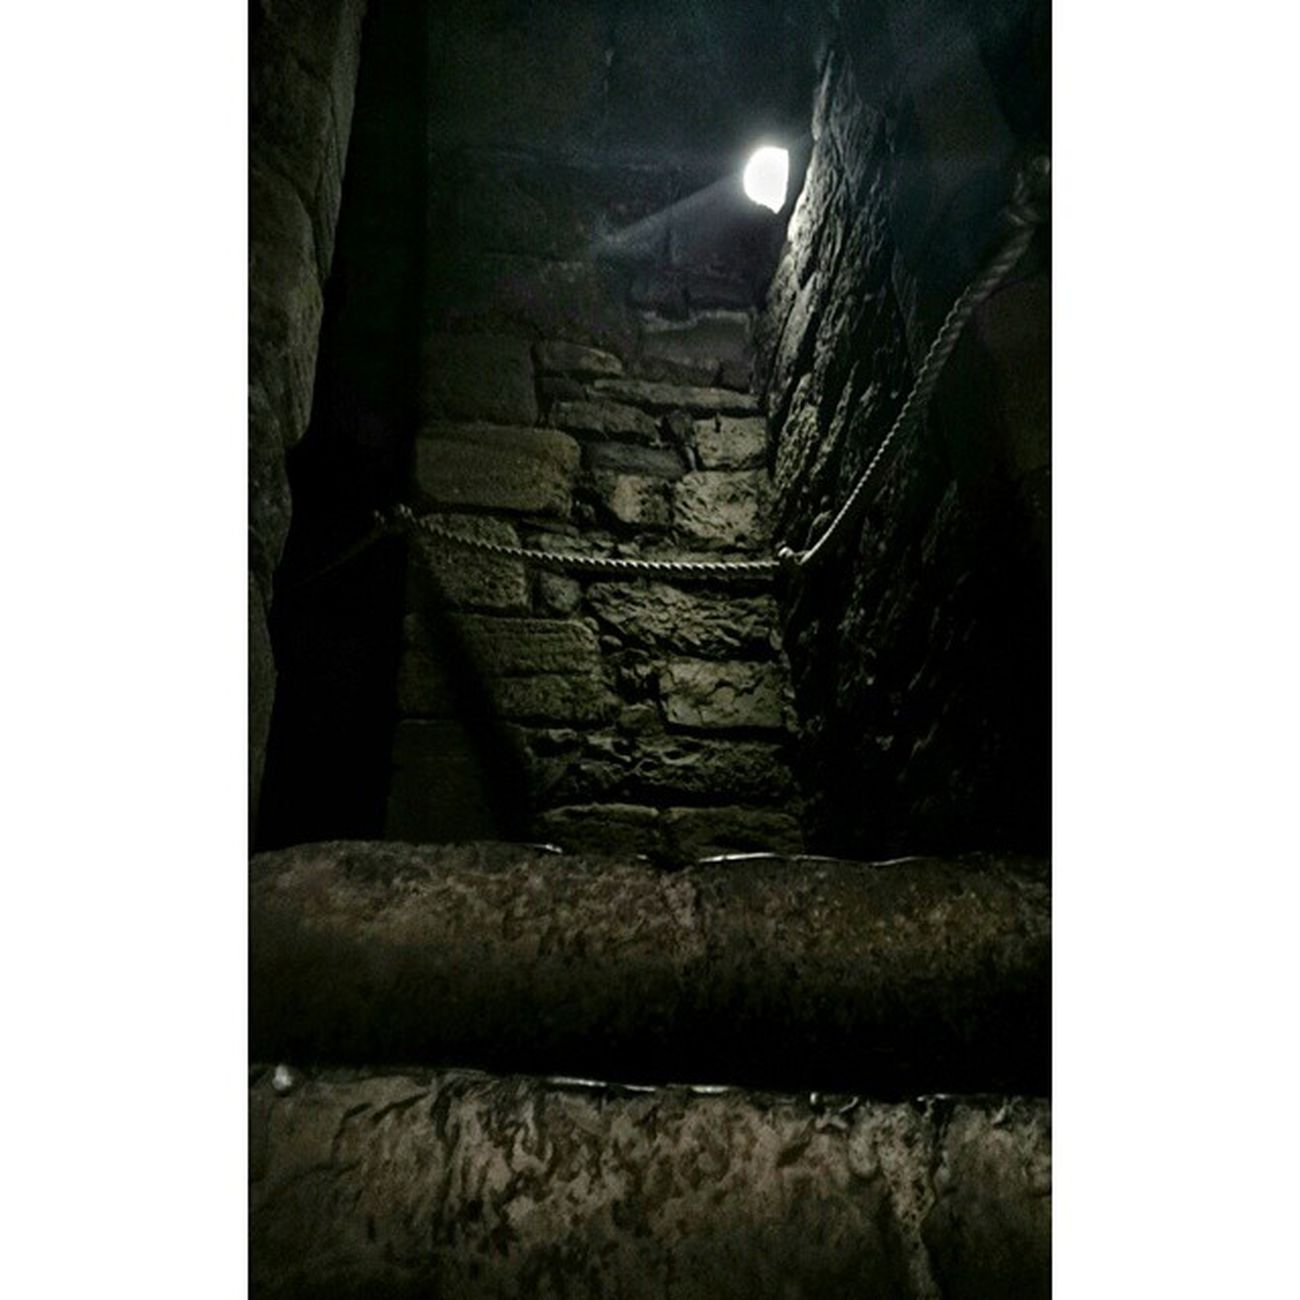 Castle staircase.. Caernarfoncastle Historicbuildings Historic_captures Castle ig_britishislesukpotdloves_united_kingdomfiftyshades_of_historynexus_nationshadowsgloomgrabberdarkmasters_familyxperiacapturingbritain